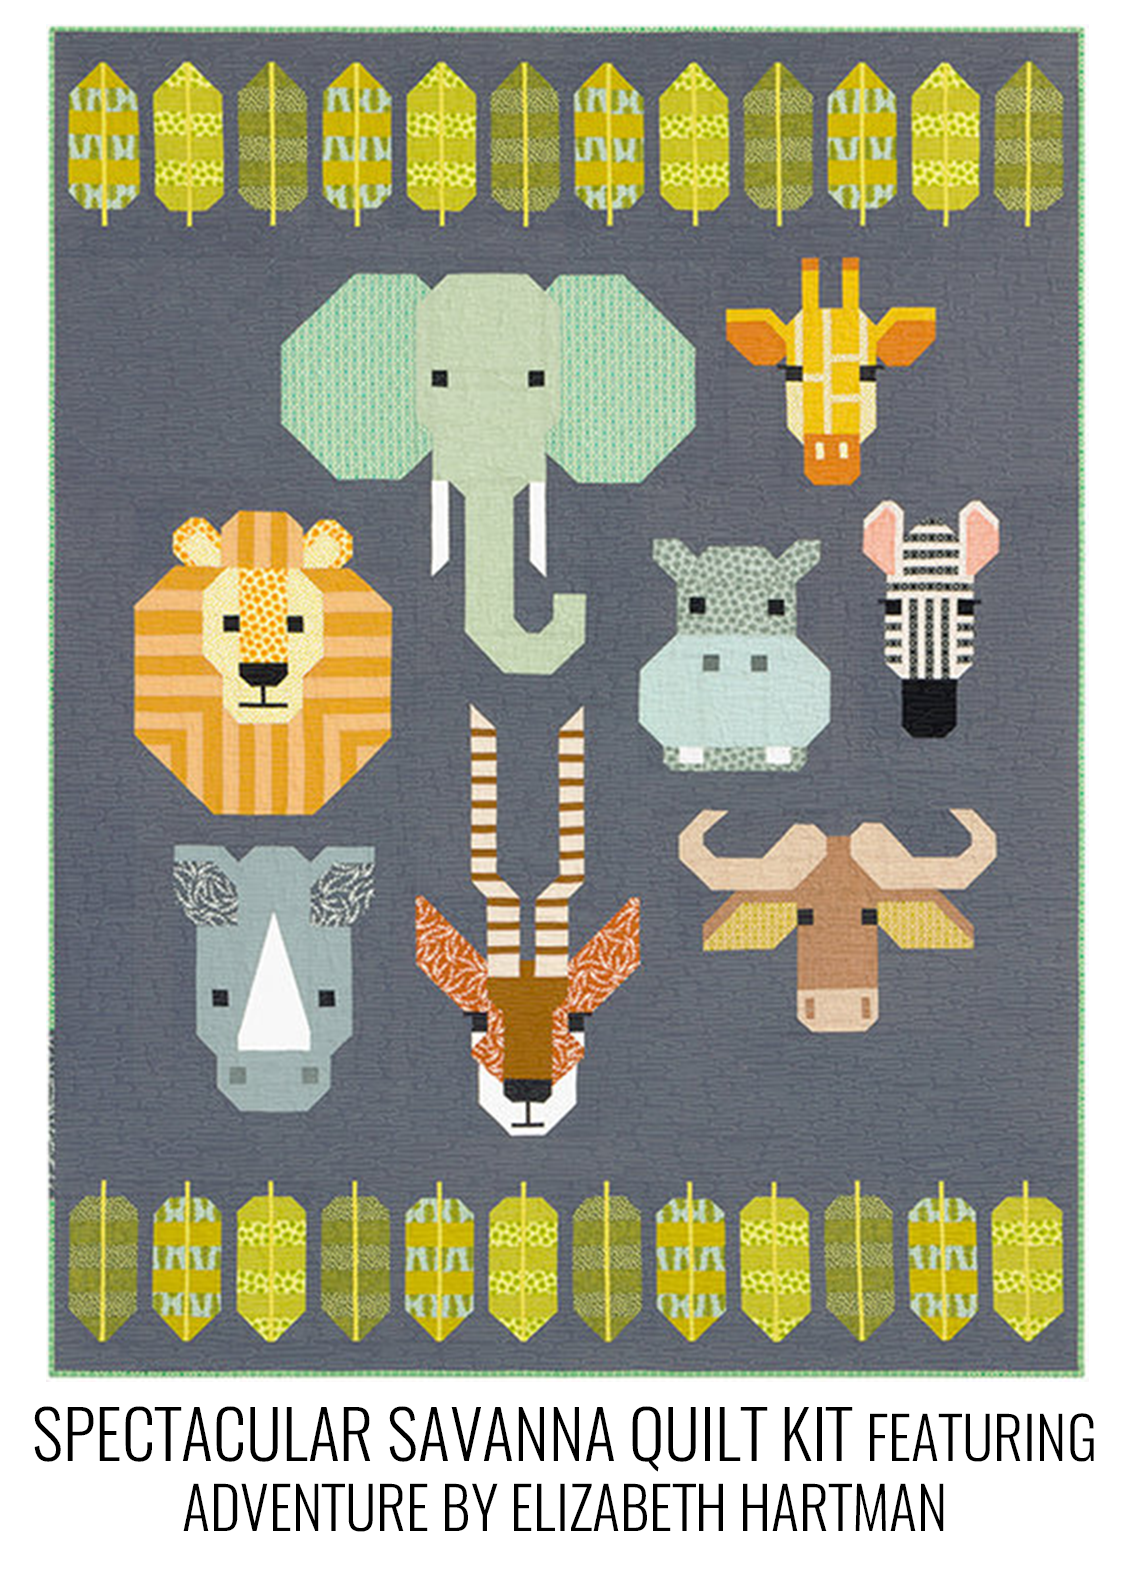 Spectacular savanna quilt kit